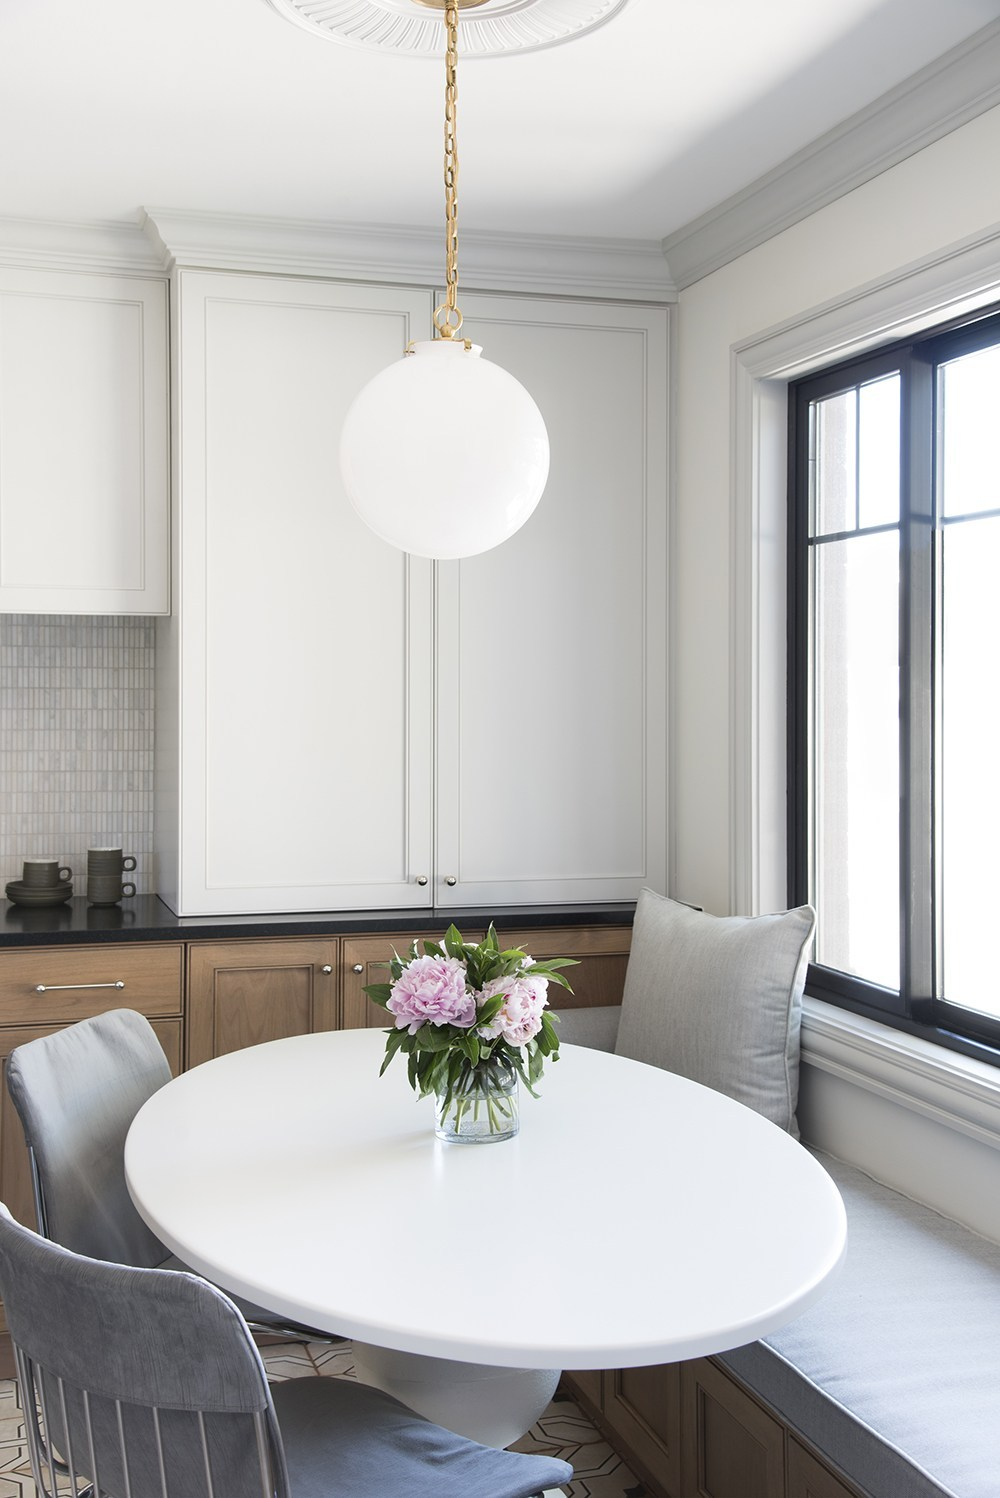 Noteworthy : Spring Cleaning and Home Updates - roomfortuesday.com